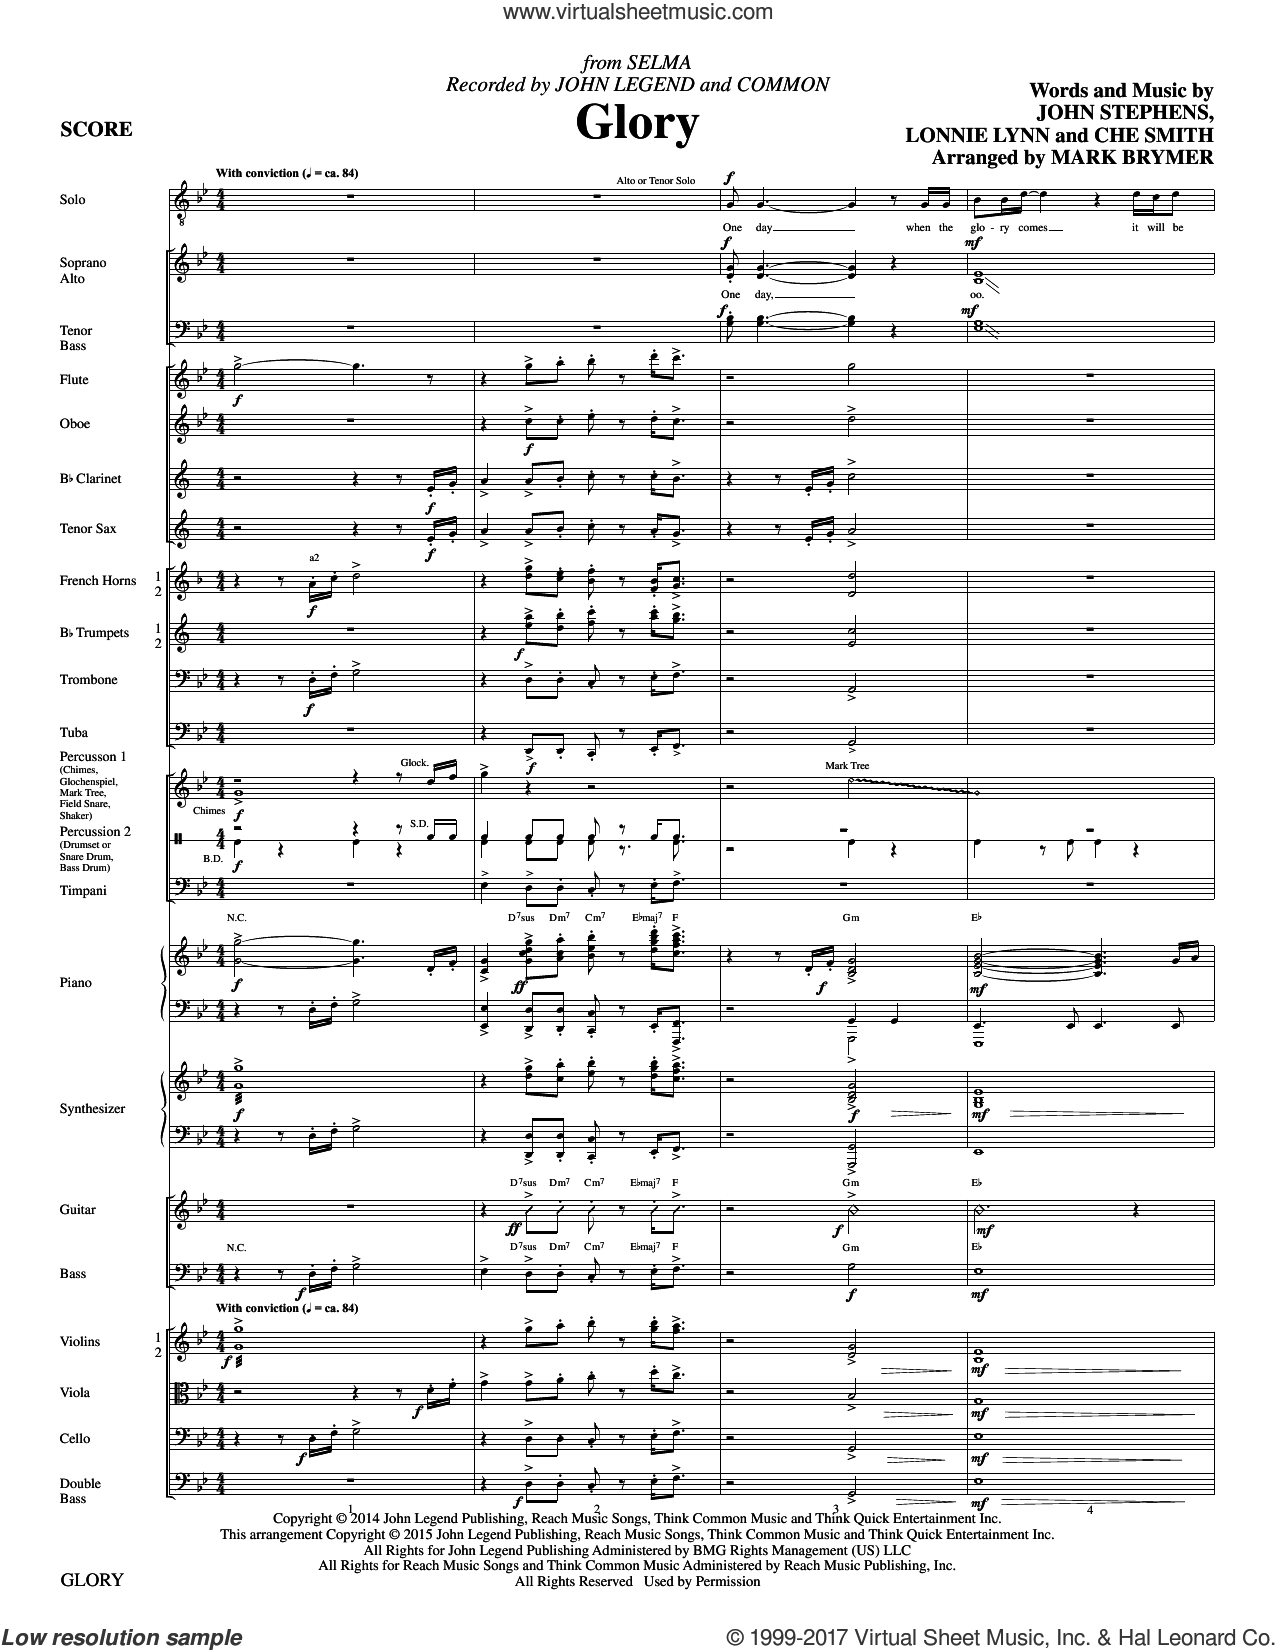 Glory (COMPLETE) sheet music for orchestra/band by Mark Brymer, Che Smith, Common & John Legend, John Stephens and Lonnie Lynn, intermediate